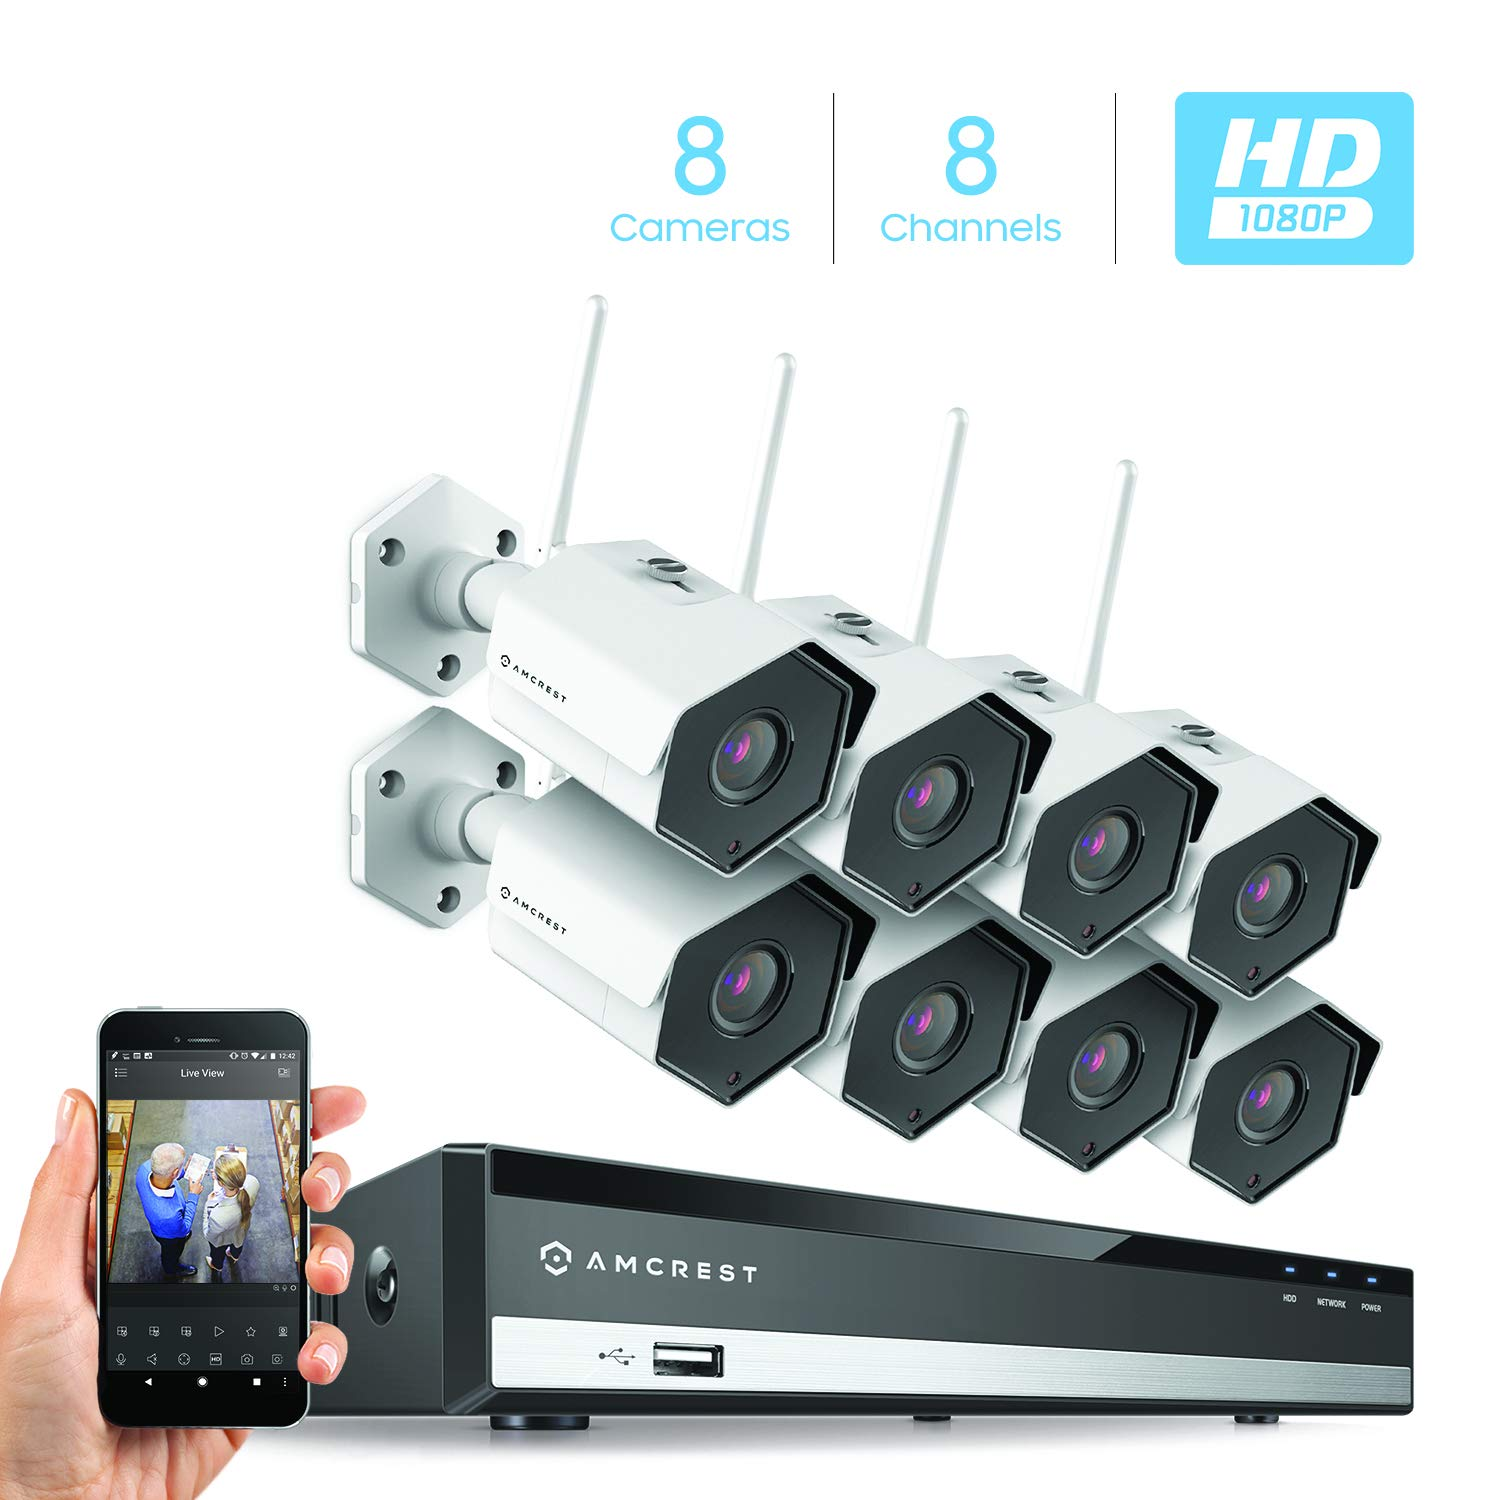 Amcrest 8CH Plug & Play H.265 6MP NVR 2MP 1080P Security Camera System, (8) x 2-Megapixel 3.6mm Wide Angle Lens Weatherproof Metal Bullet Wi-Fi IP Cameras, 98 Feet Night Vision (White)